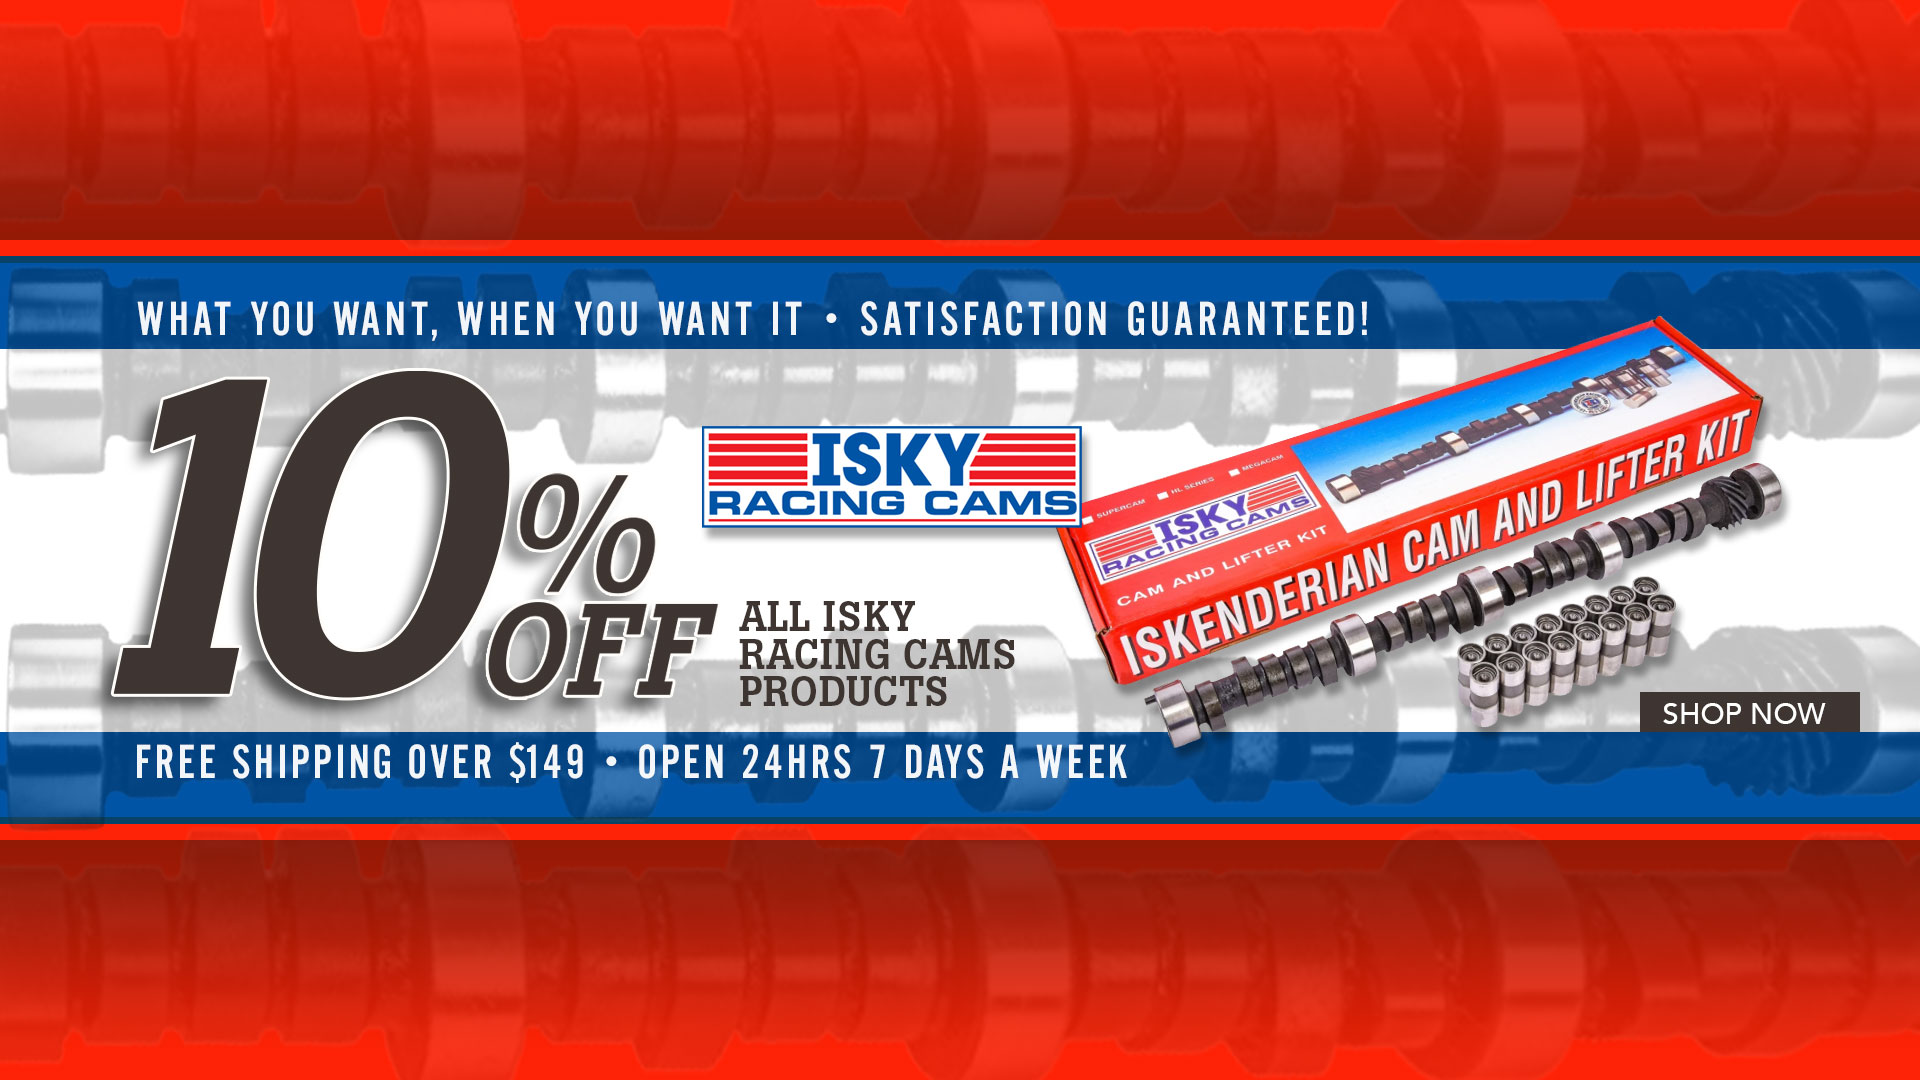 Save 10% on ALL Isky Racing Cams Products